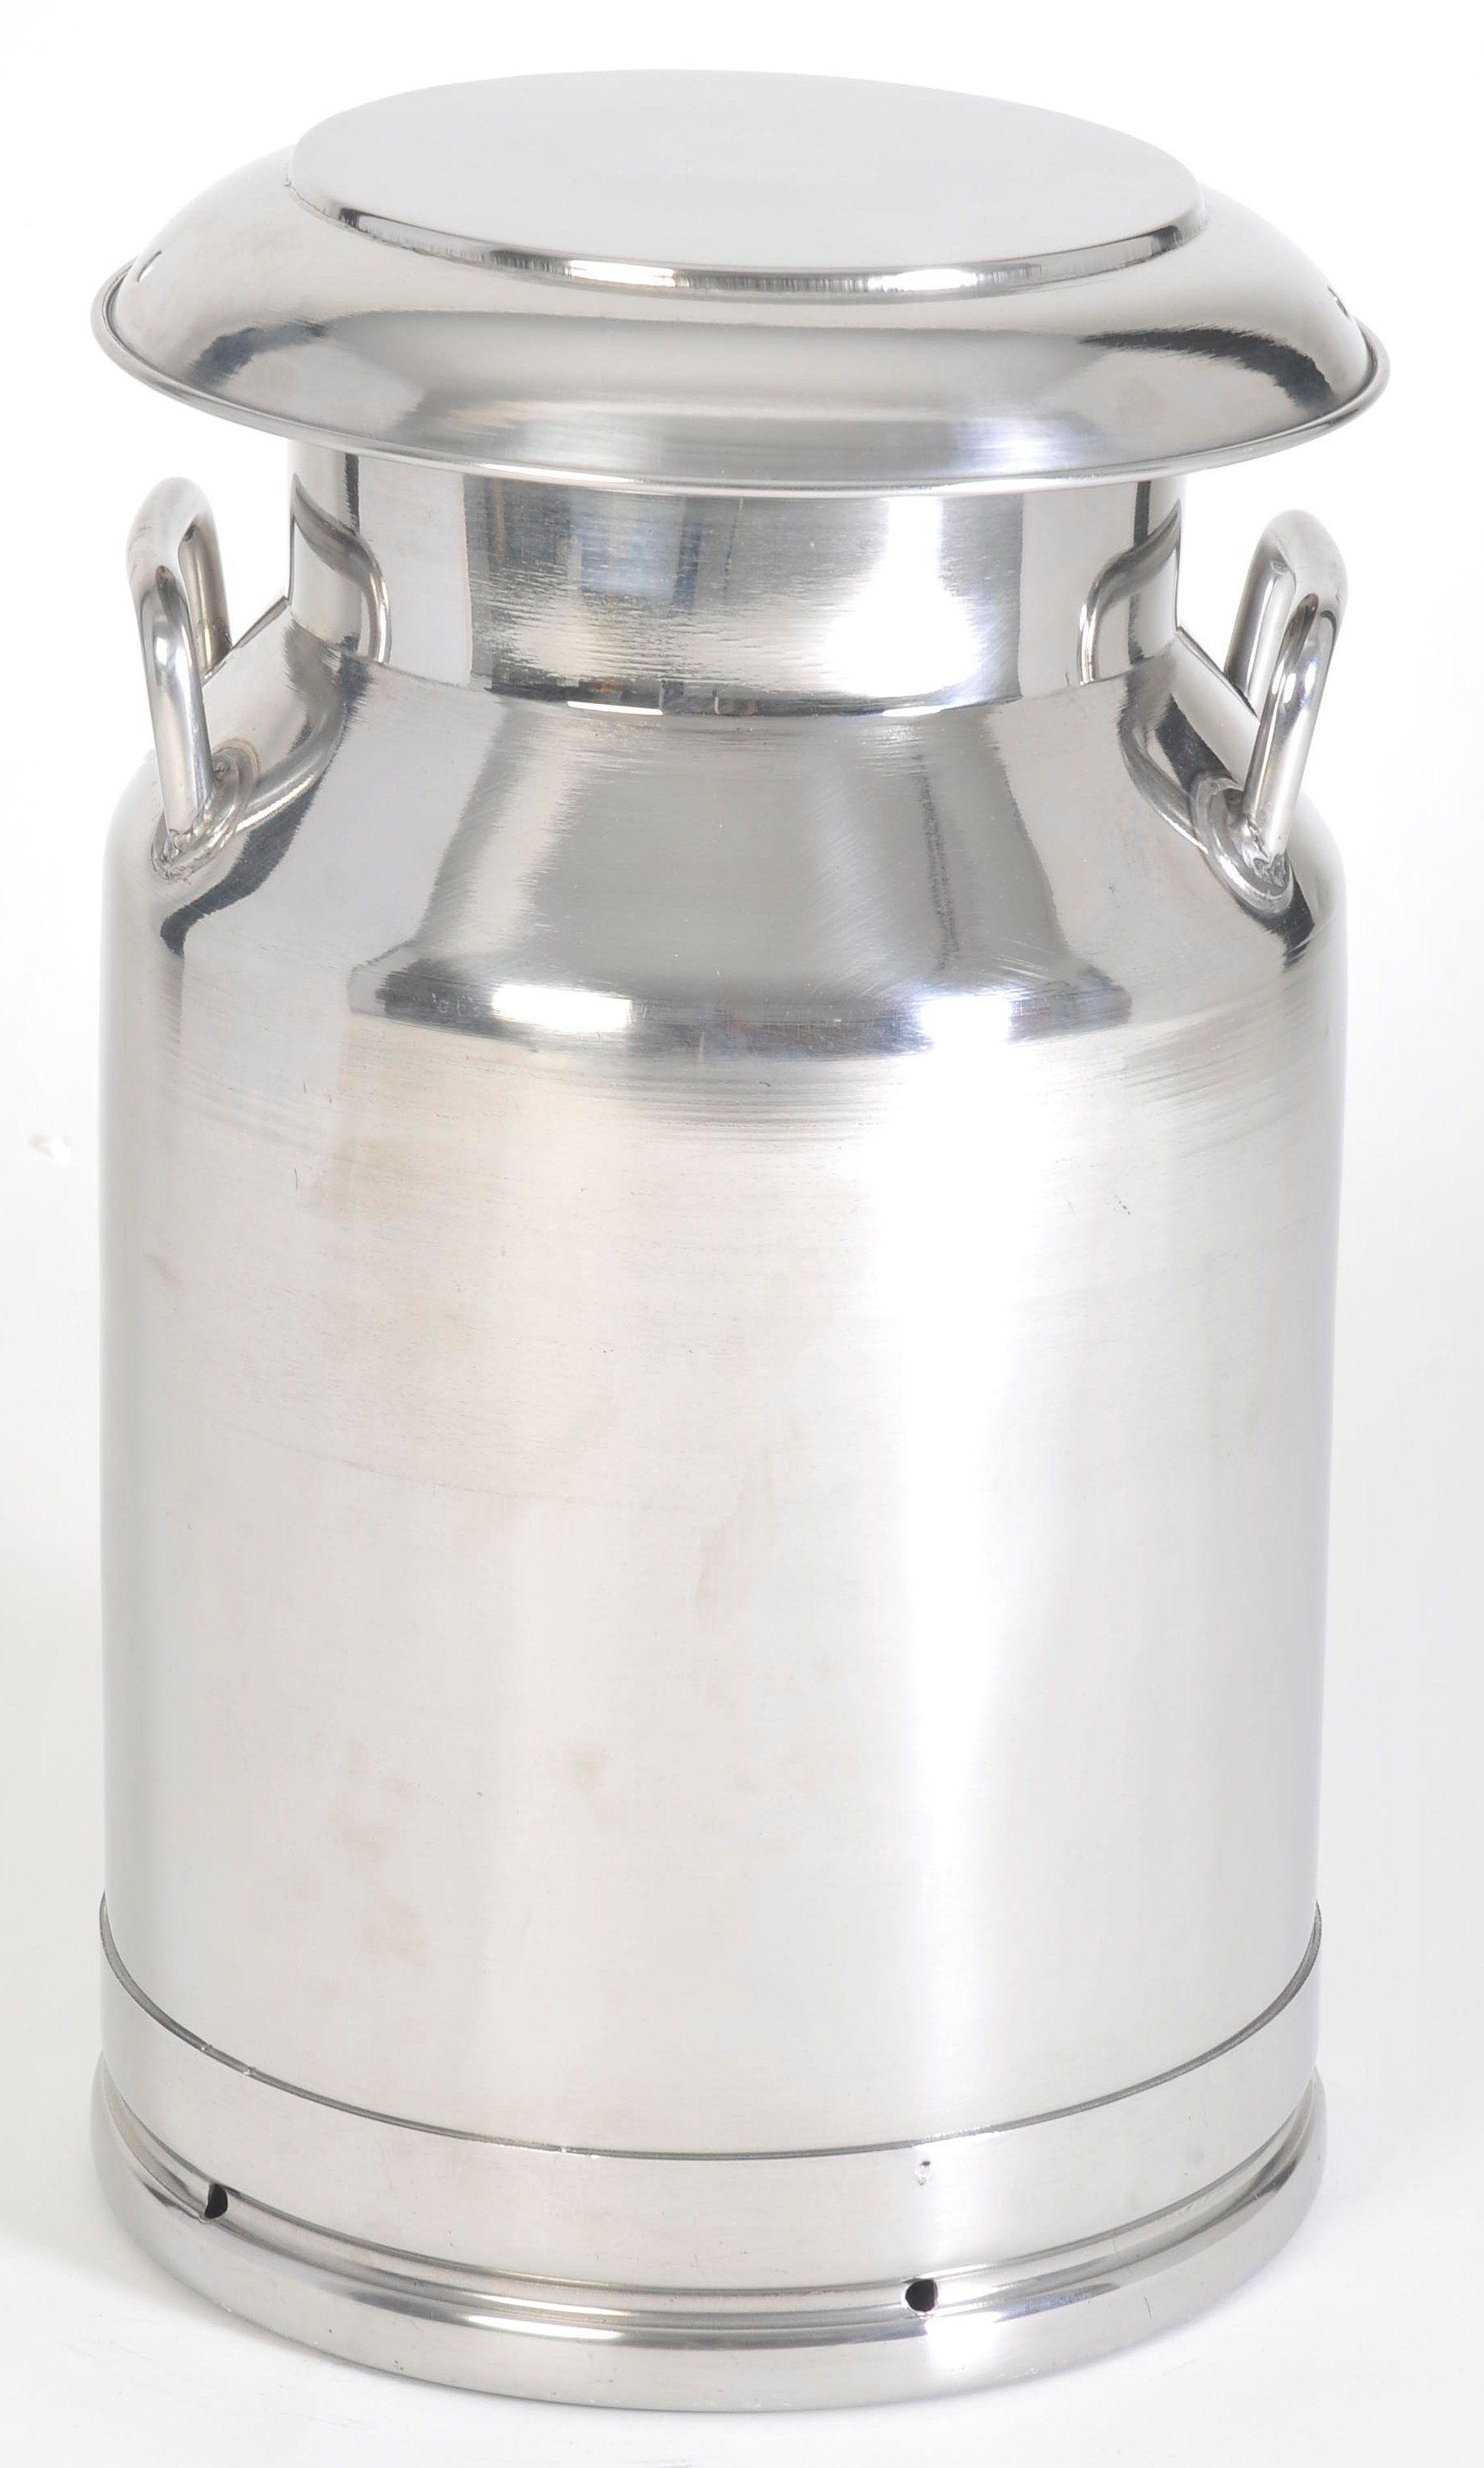 Stainless Steel Aisi 304 Grade Milk Can Of Capacity 20 Liters Both Available In Regular Economy Model No Dairy Recipes Milk Cans Good Manufacturing Practice